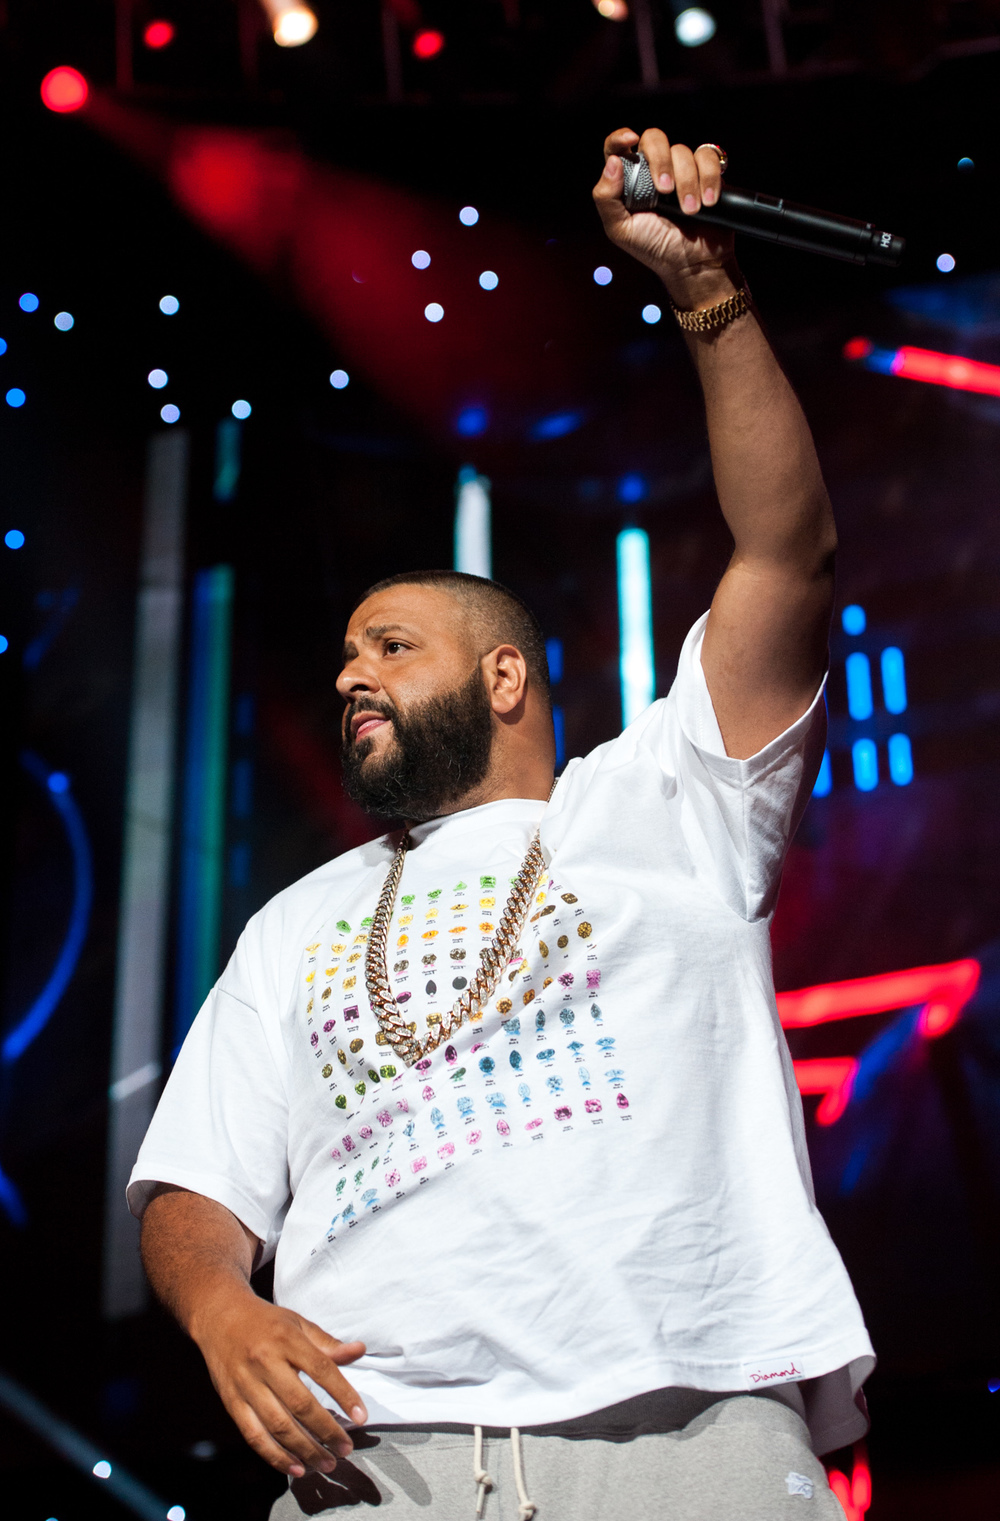 DJ Khaled @ Staples Center | 2014